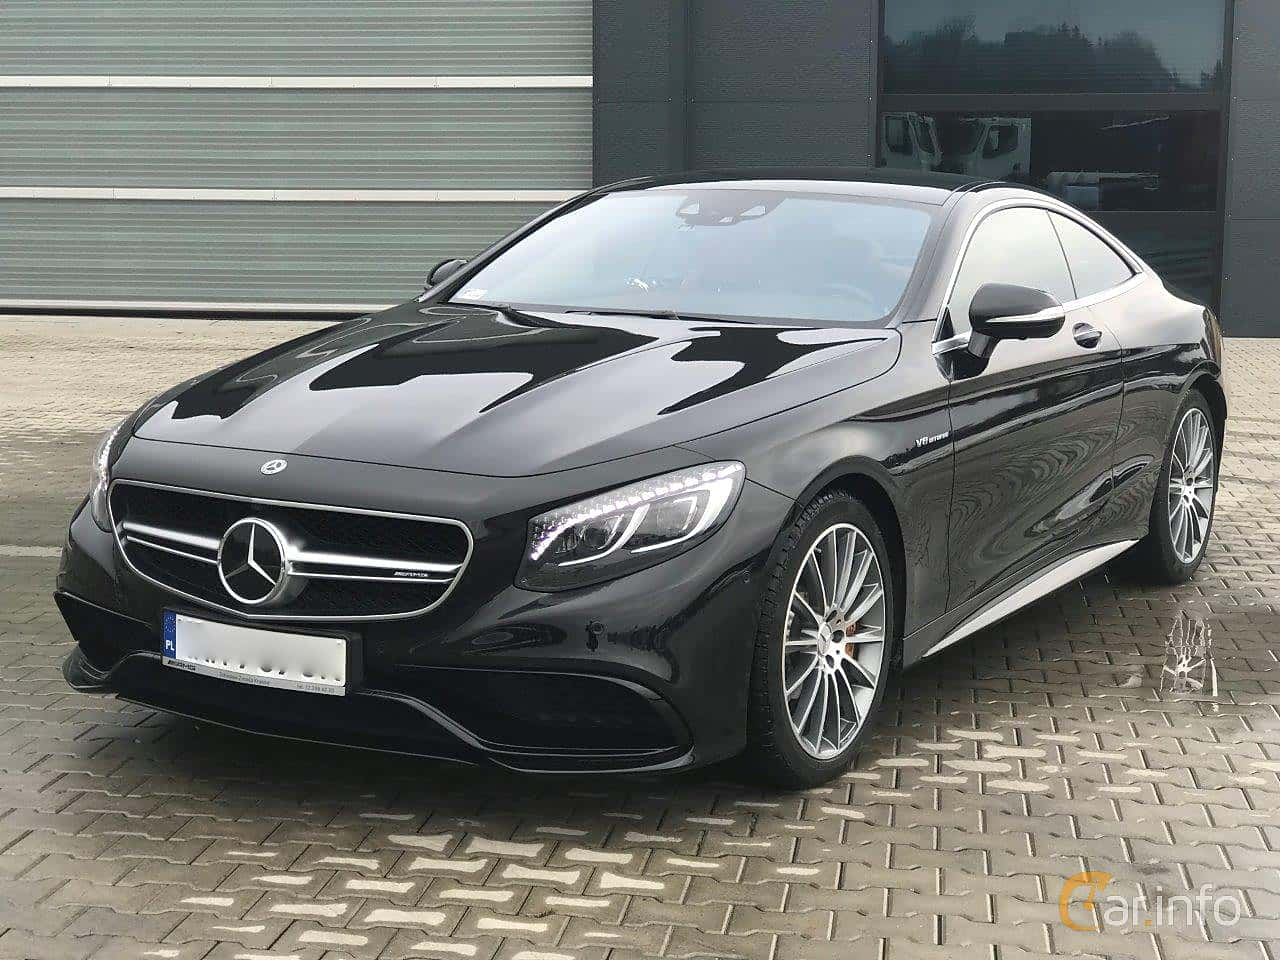 Mercedes benz amg s 63 4matic coup 5 5 v8 4matic 585hp for 2017 mercedes benz gls450 curb weight